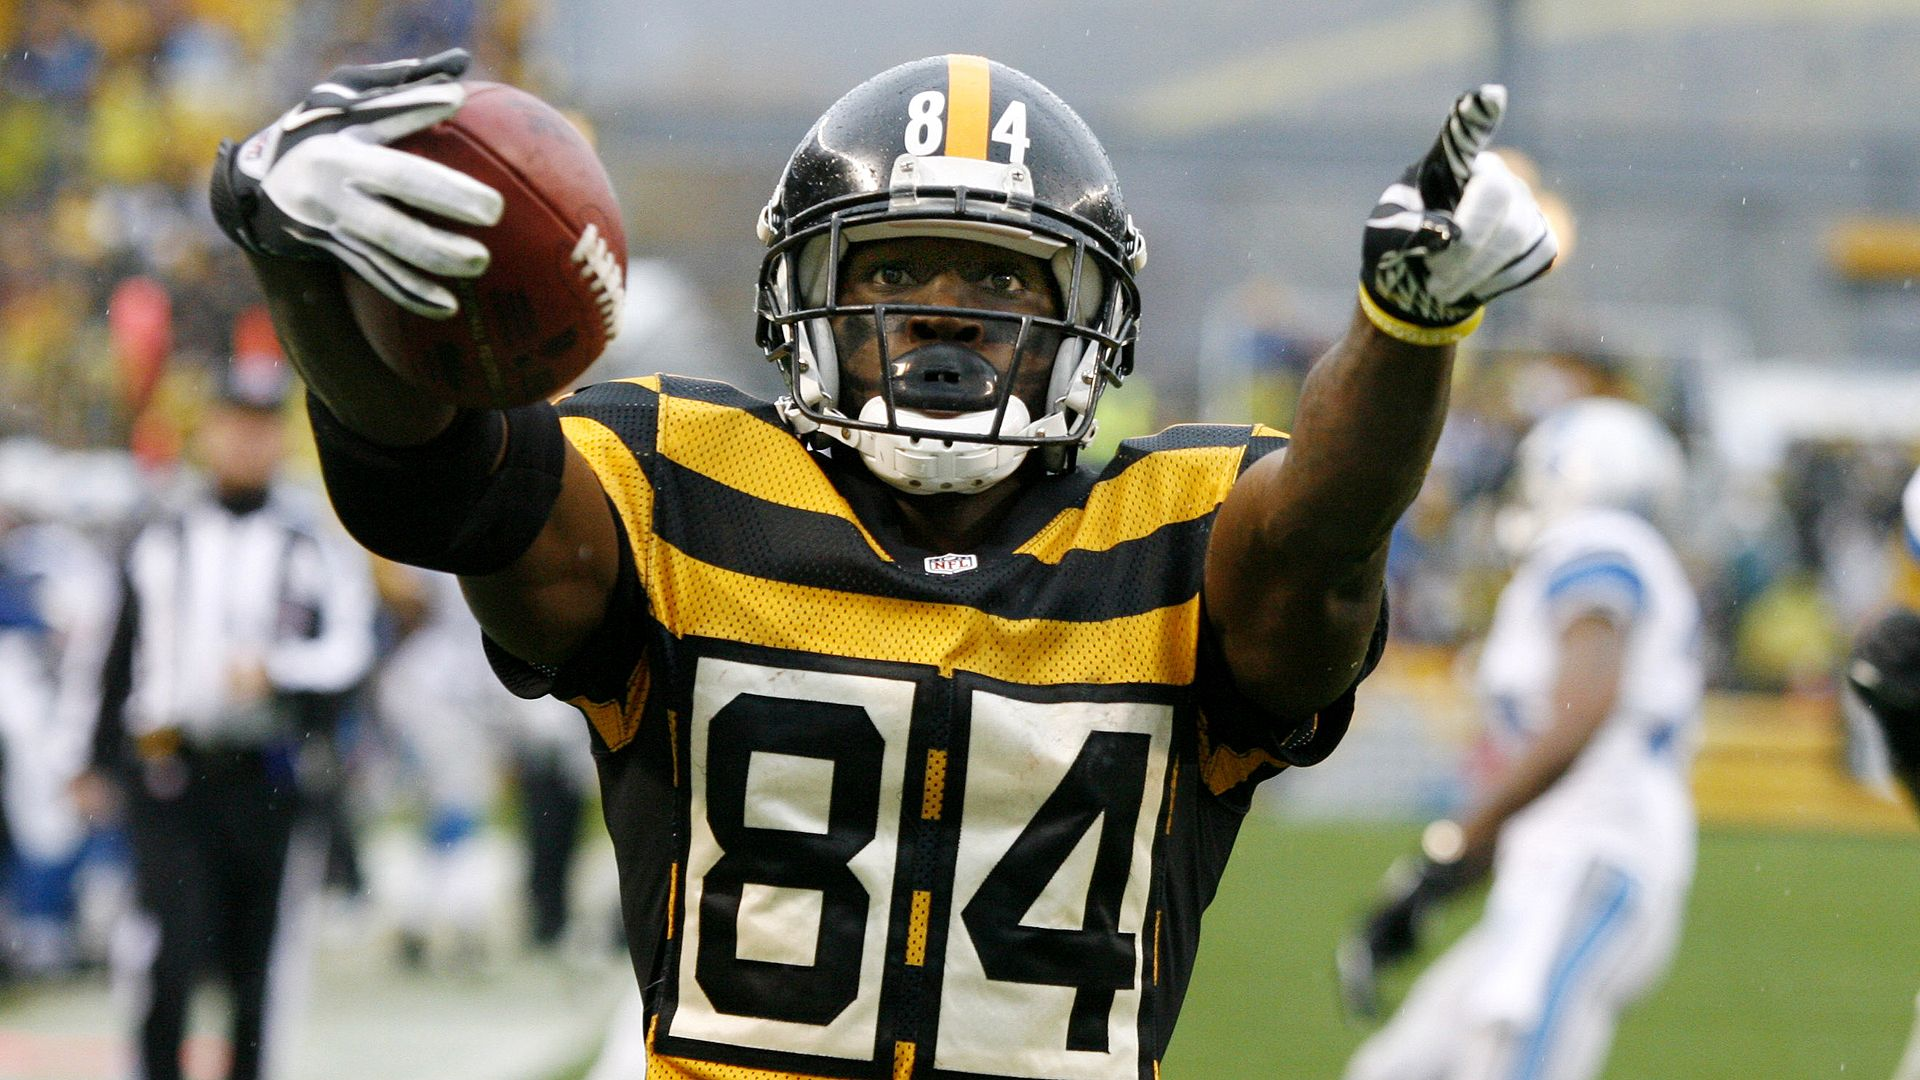 finest selection 27286 4f7ac antonio brown bumblebee jersey